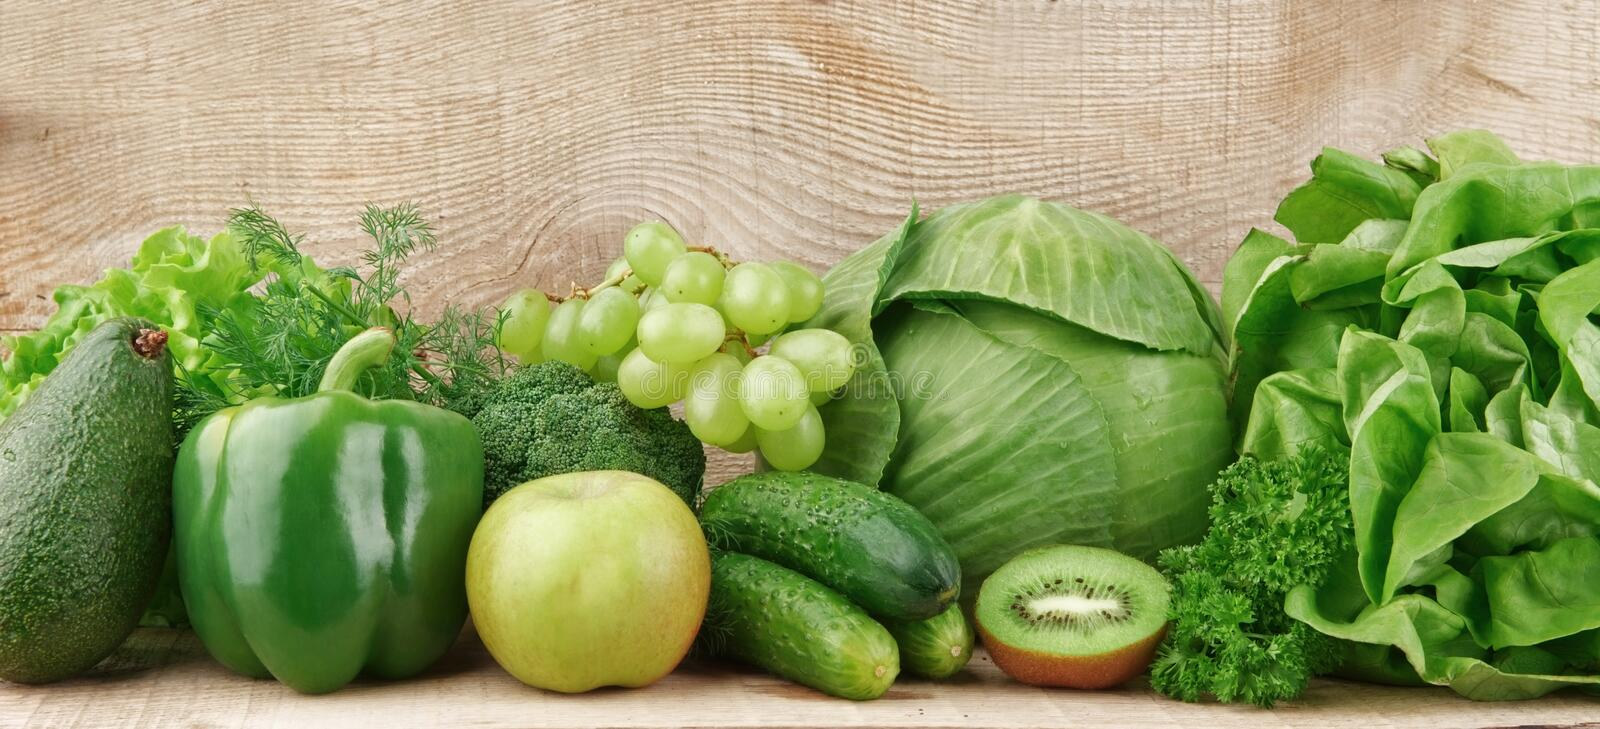 Set of green vegetables and fruits. Group of green vegetables and fruits on wooden background